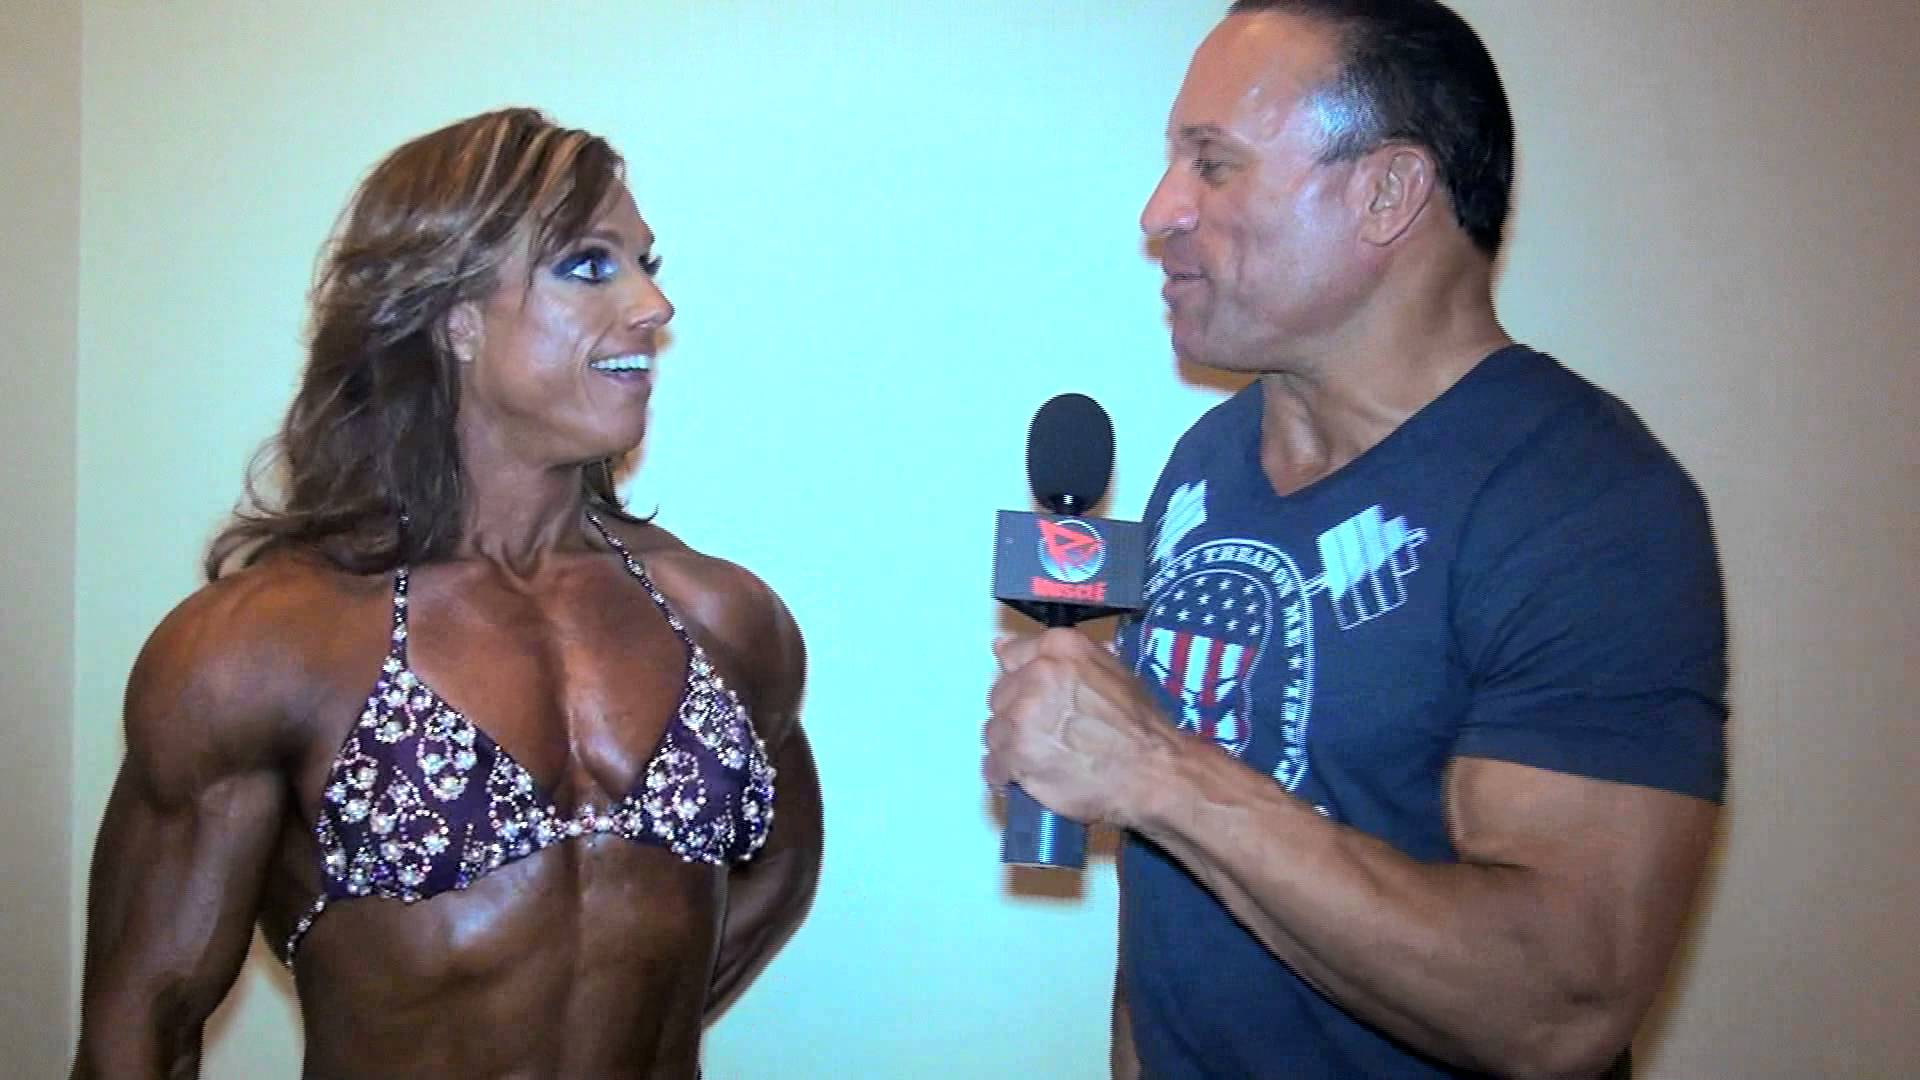 Sheila Bleck After Winning At The 2014 Tampa Pro